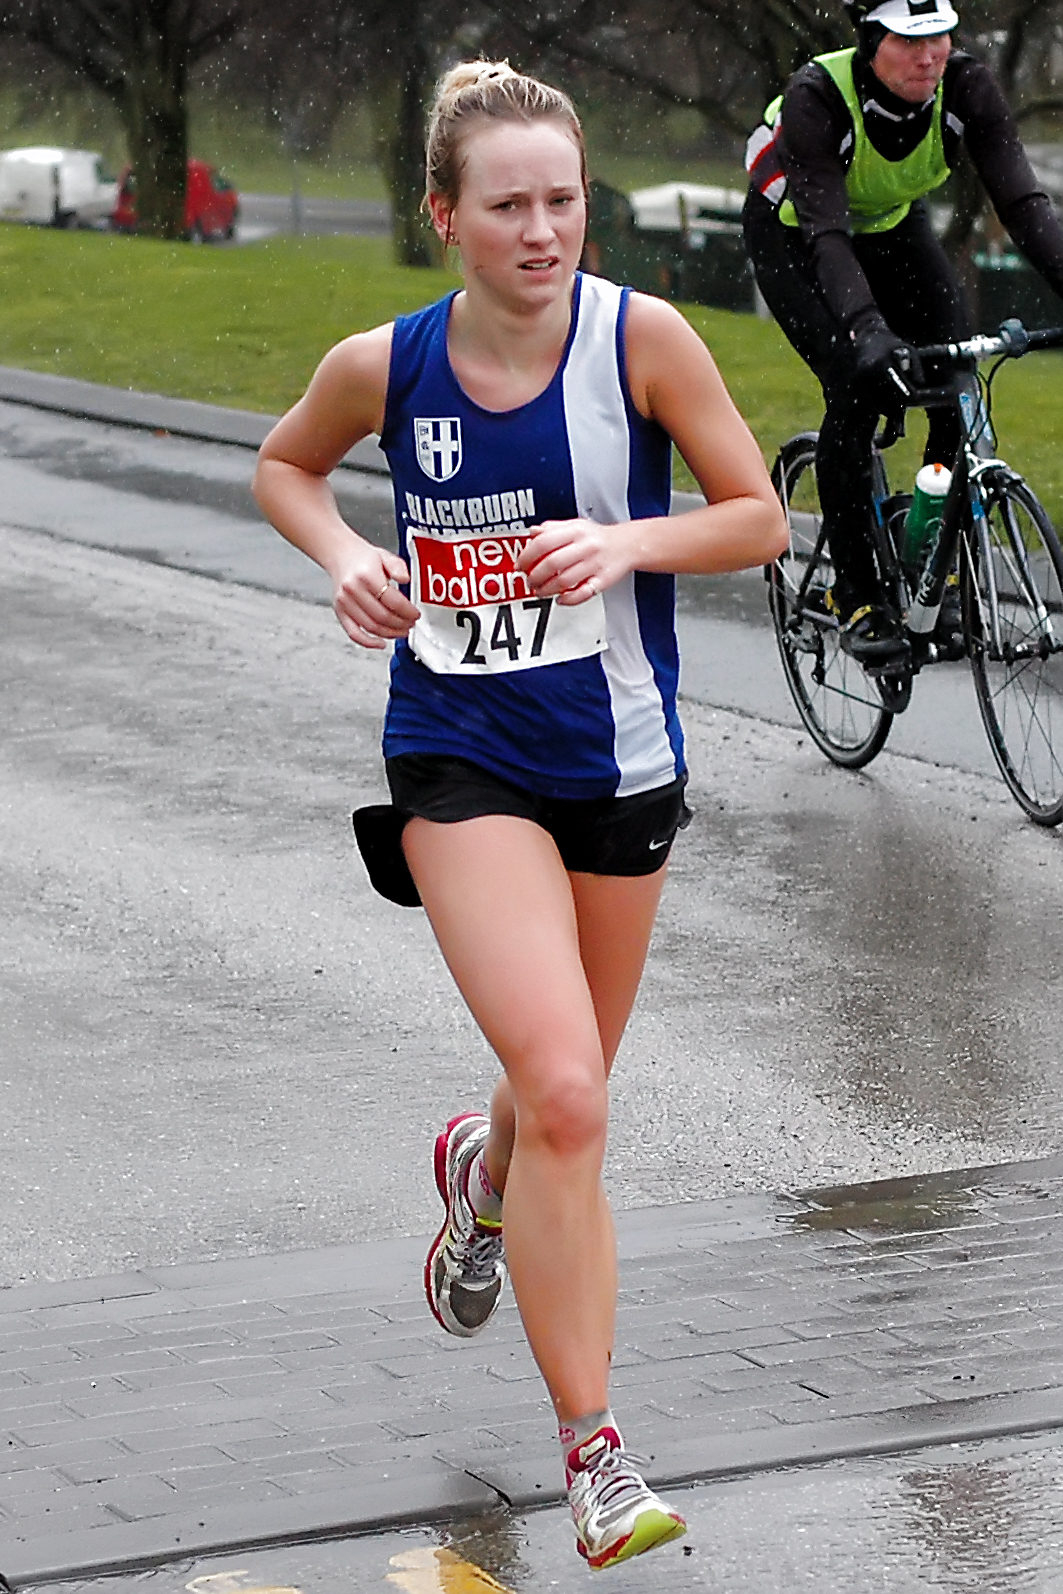 Harriers Athletes shine on Road & Fell with Wins & PB's